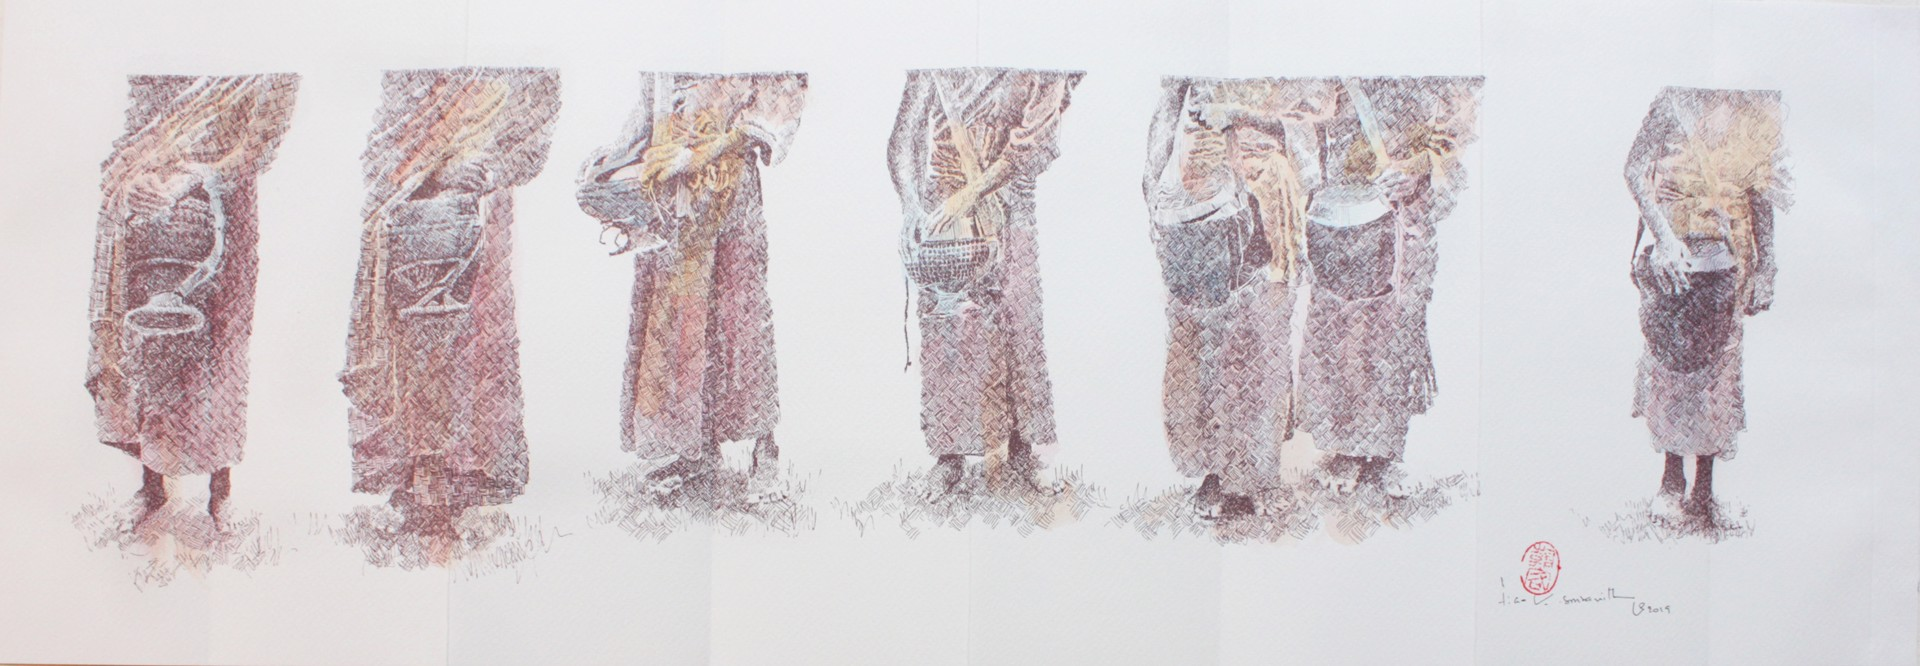 Alms Giving Procession: Print Series III by Tiao Nithakhong Somsanith